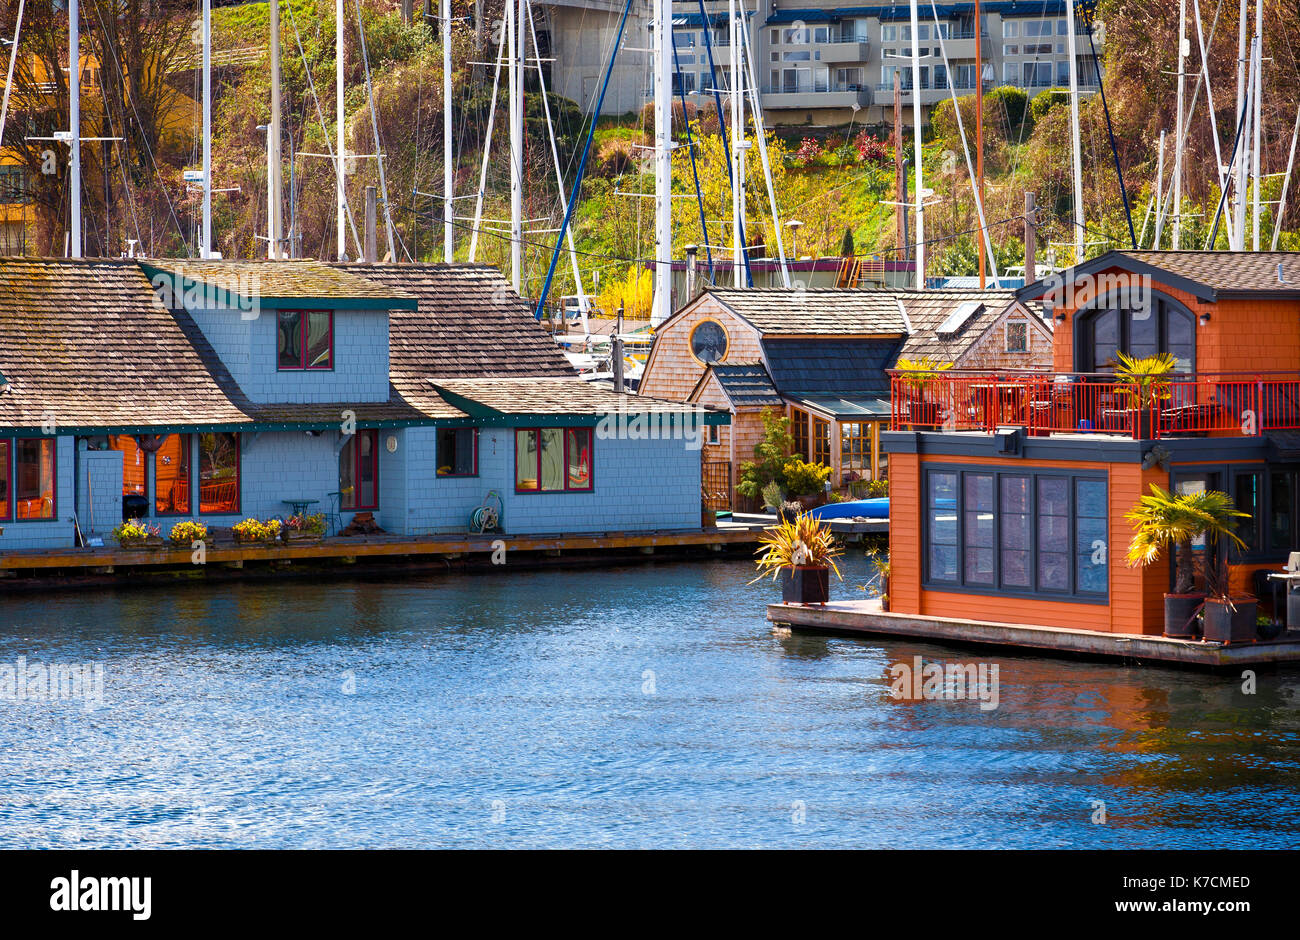 Houseboats and floating homes in Lake Union, Seattle, Washington - Stock Image